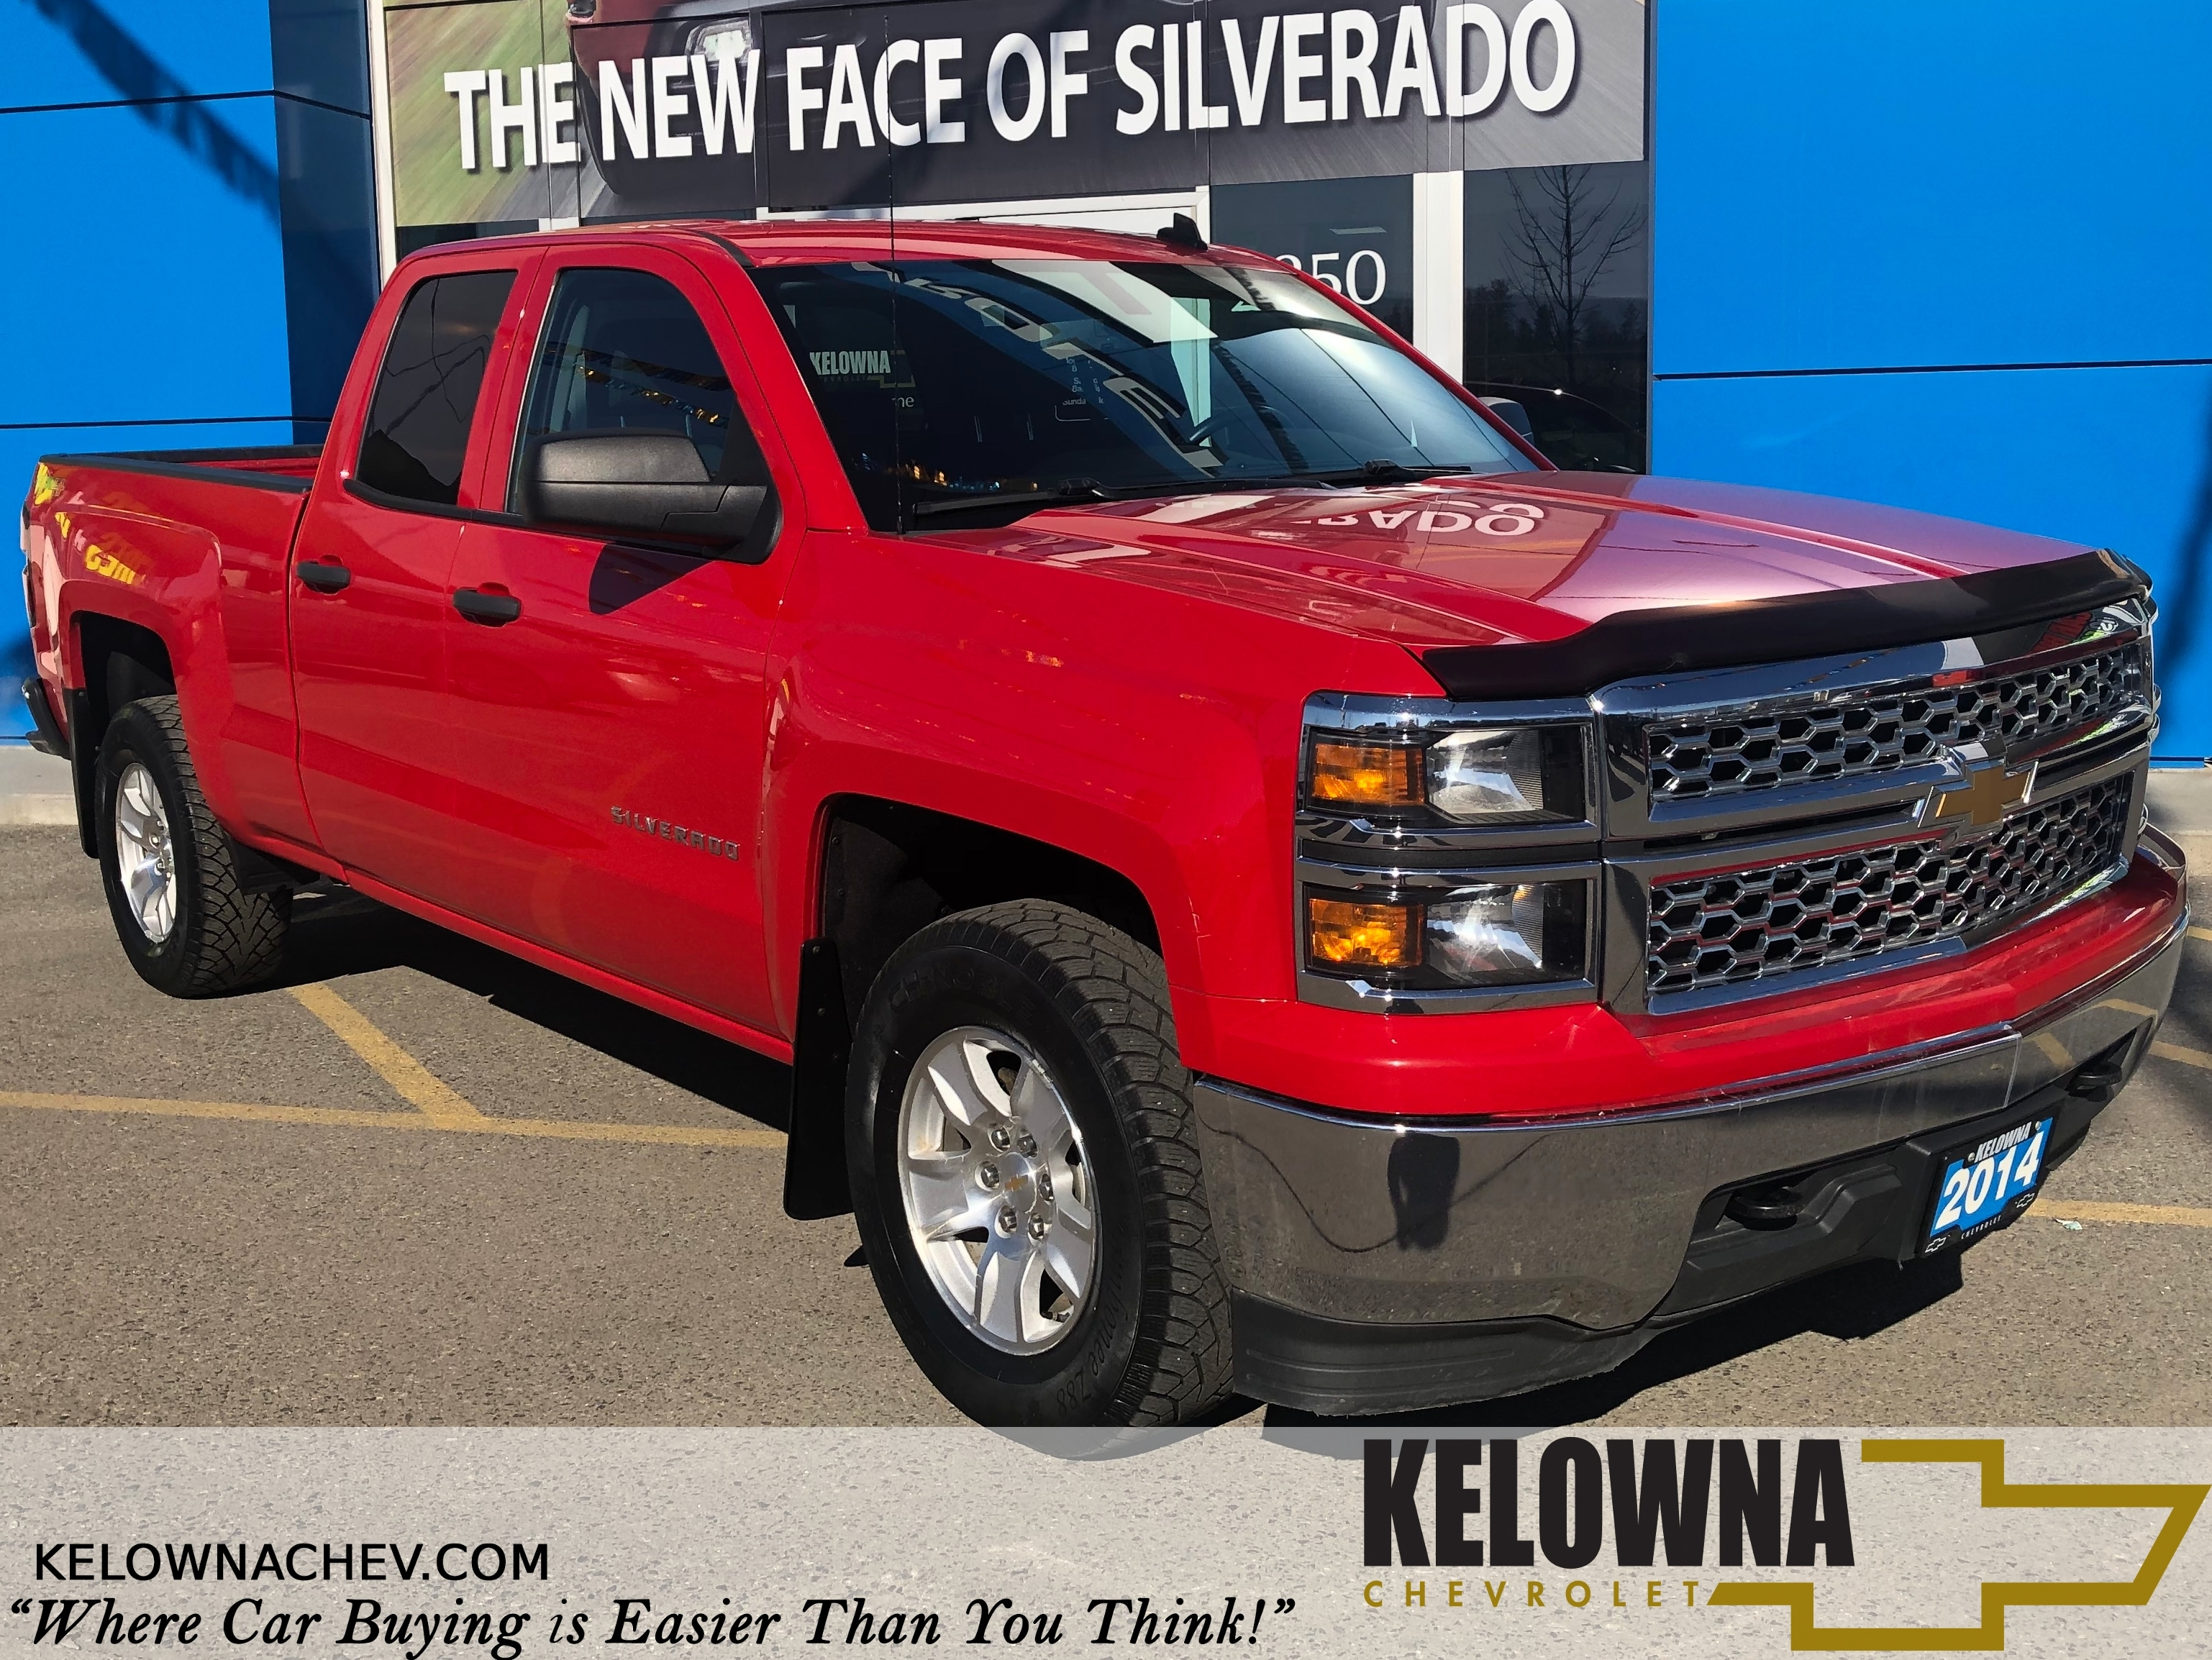 2014 Chevrolet Silverado 1500 4x4 Bluetooth, Remote Keyless Entry Truck Double Cab